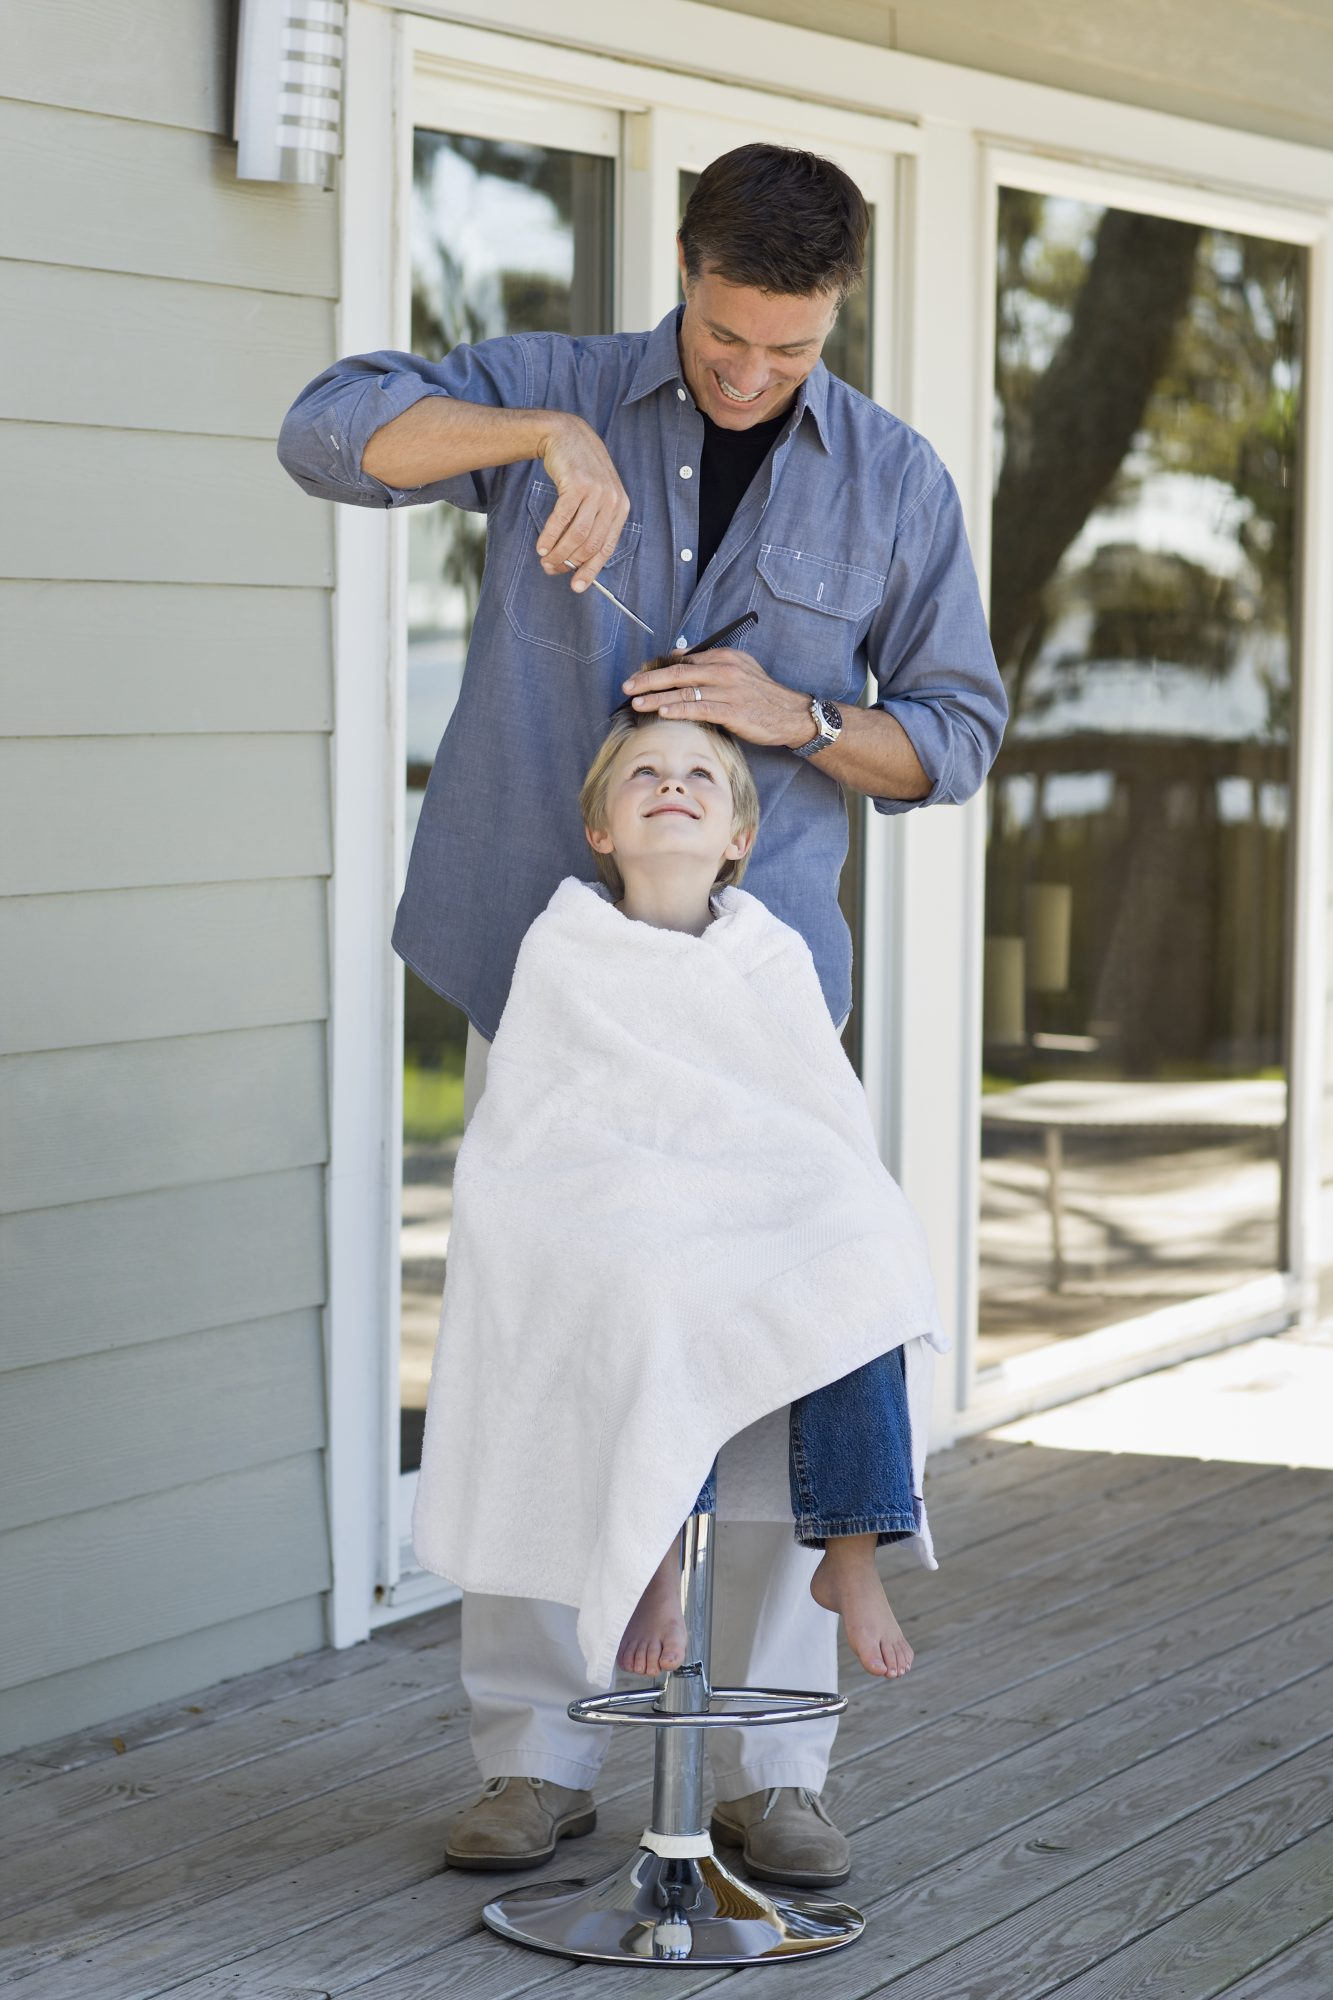 father cutting son's hair outside